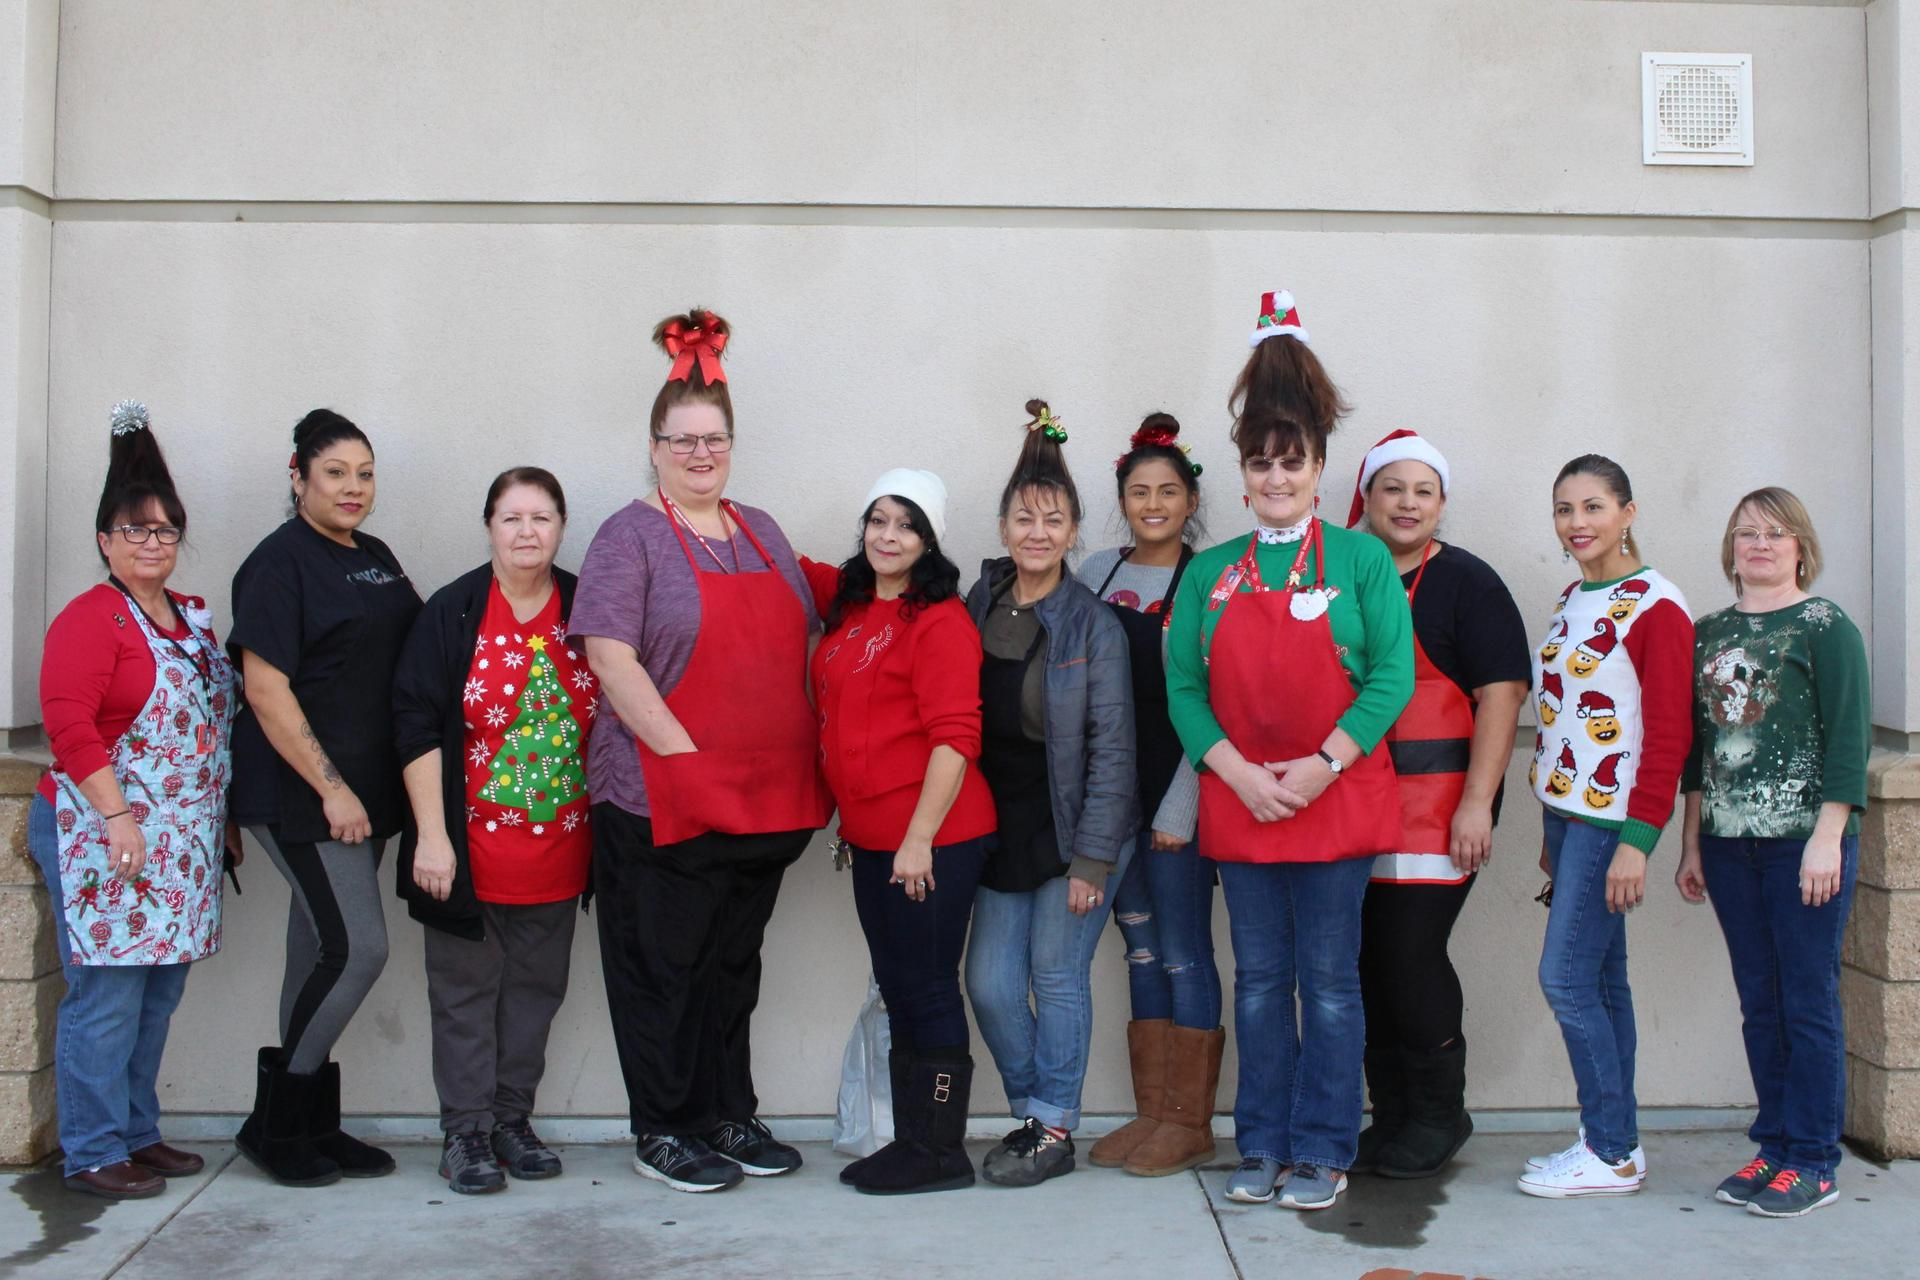 The Cafeteria staff pose as residents of Whoville